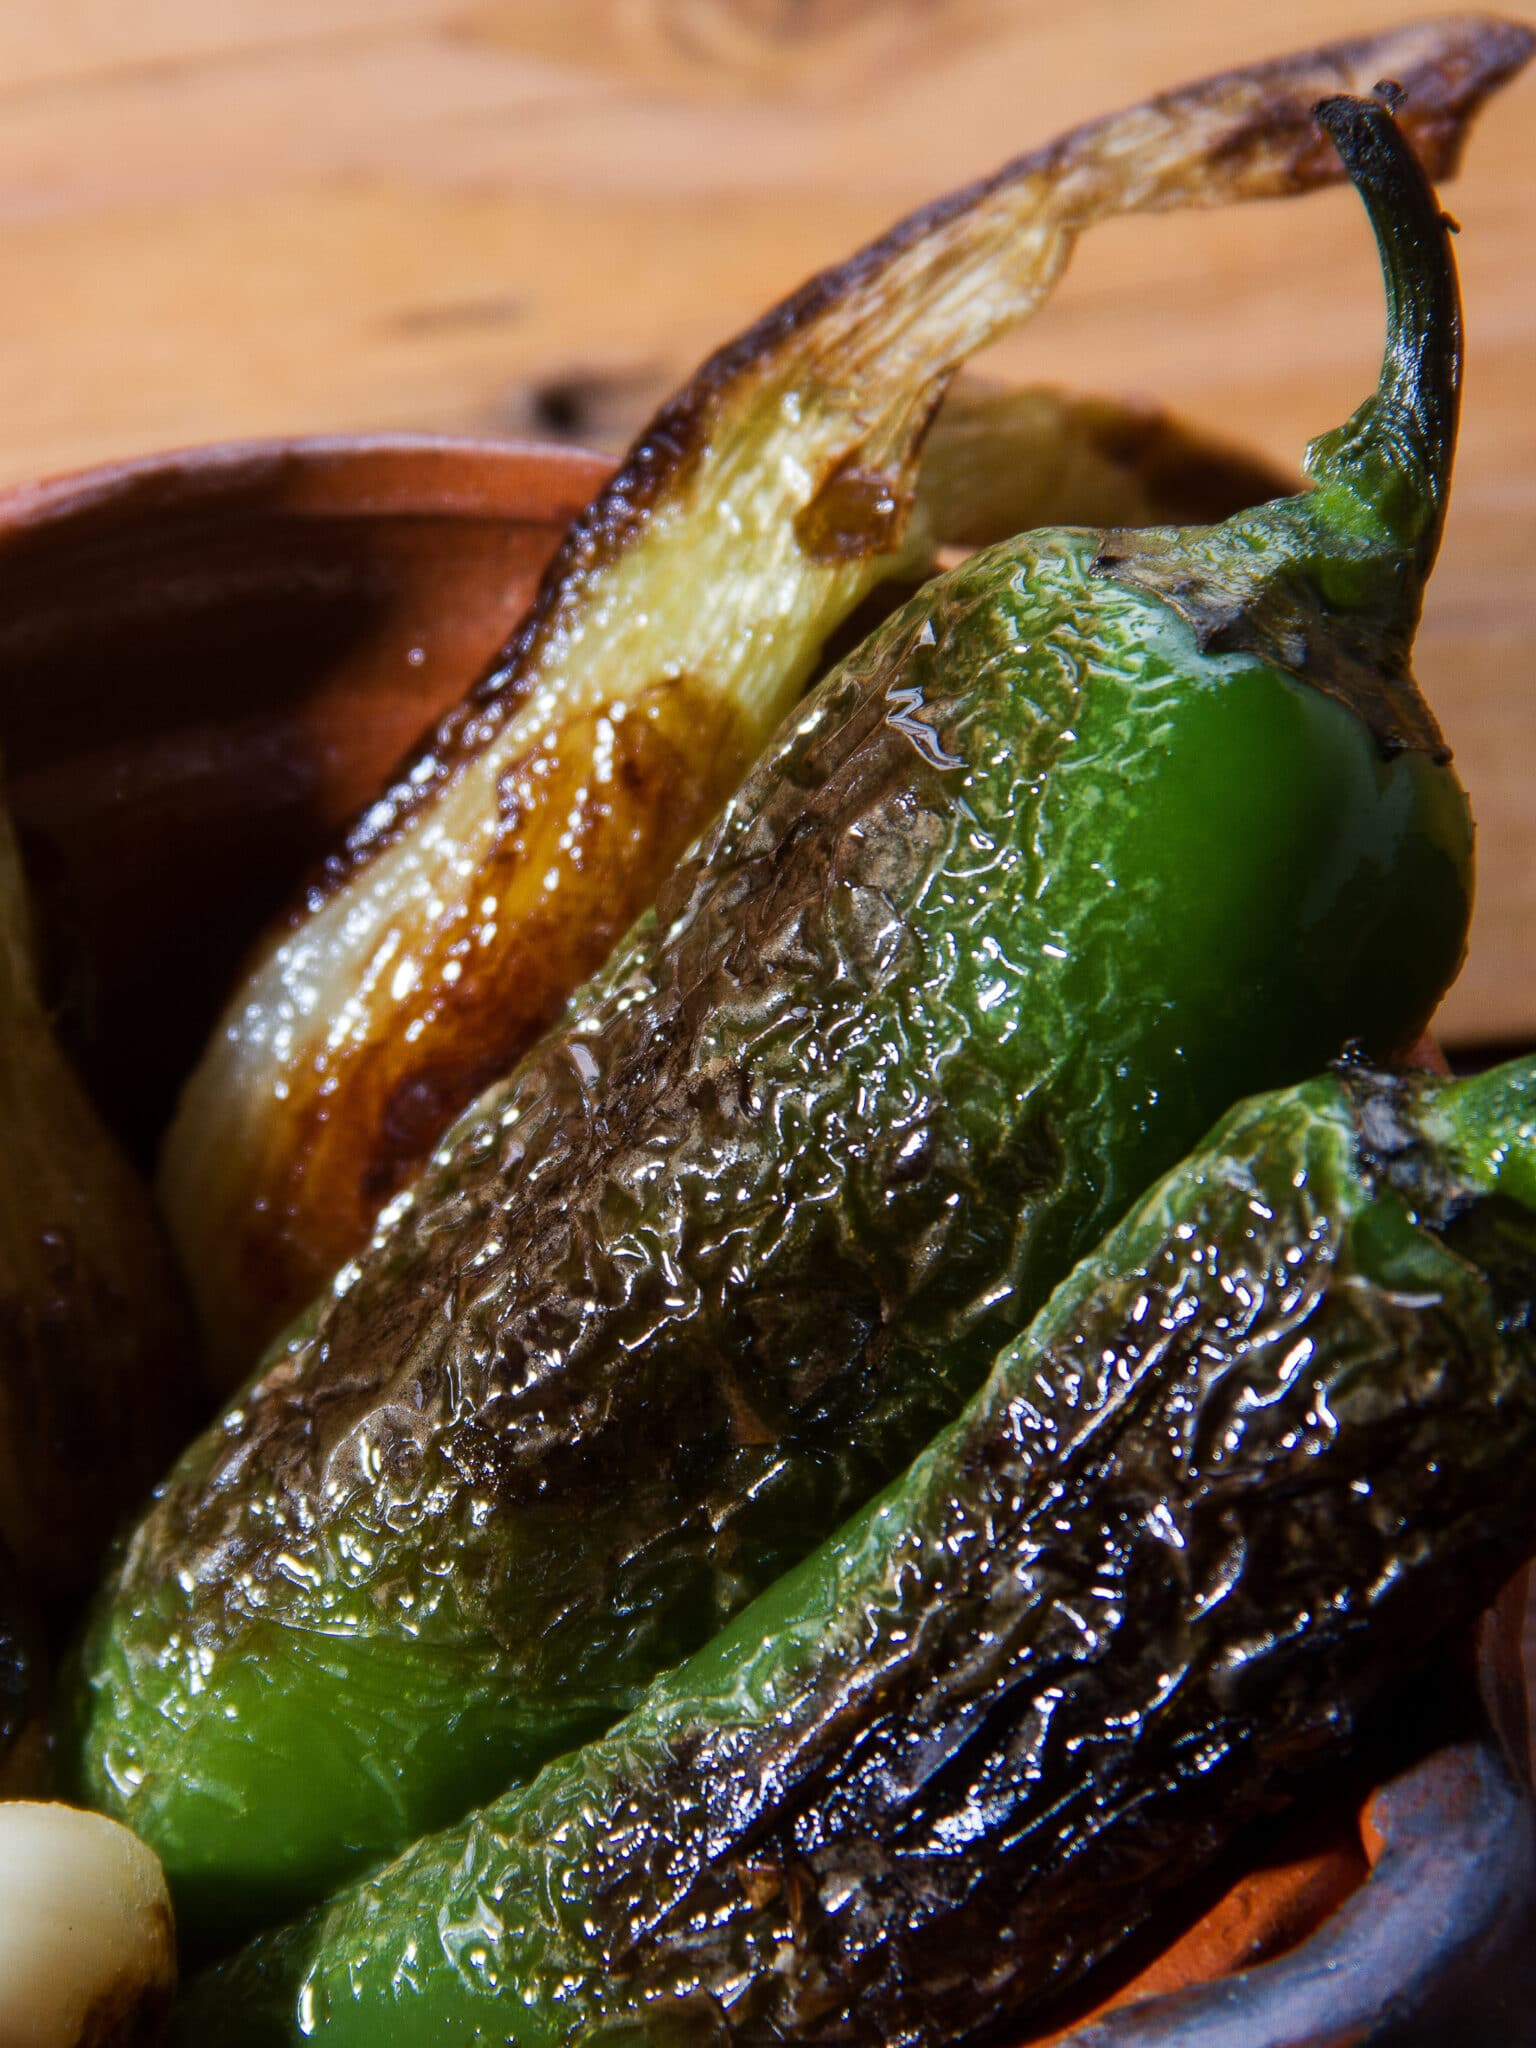 Jalapenos in a bowl, roasted until their skin blackened.